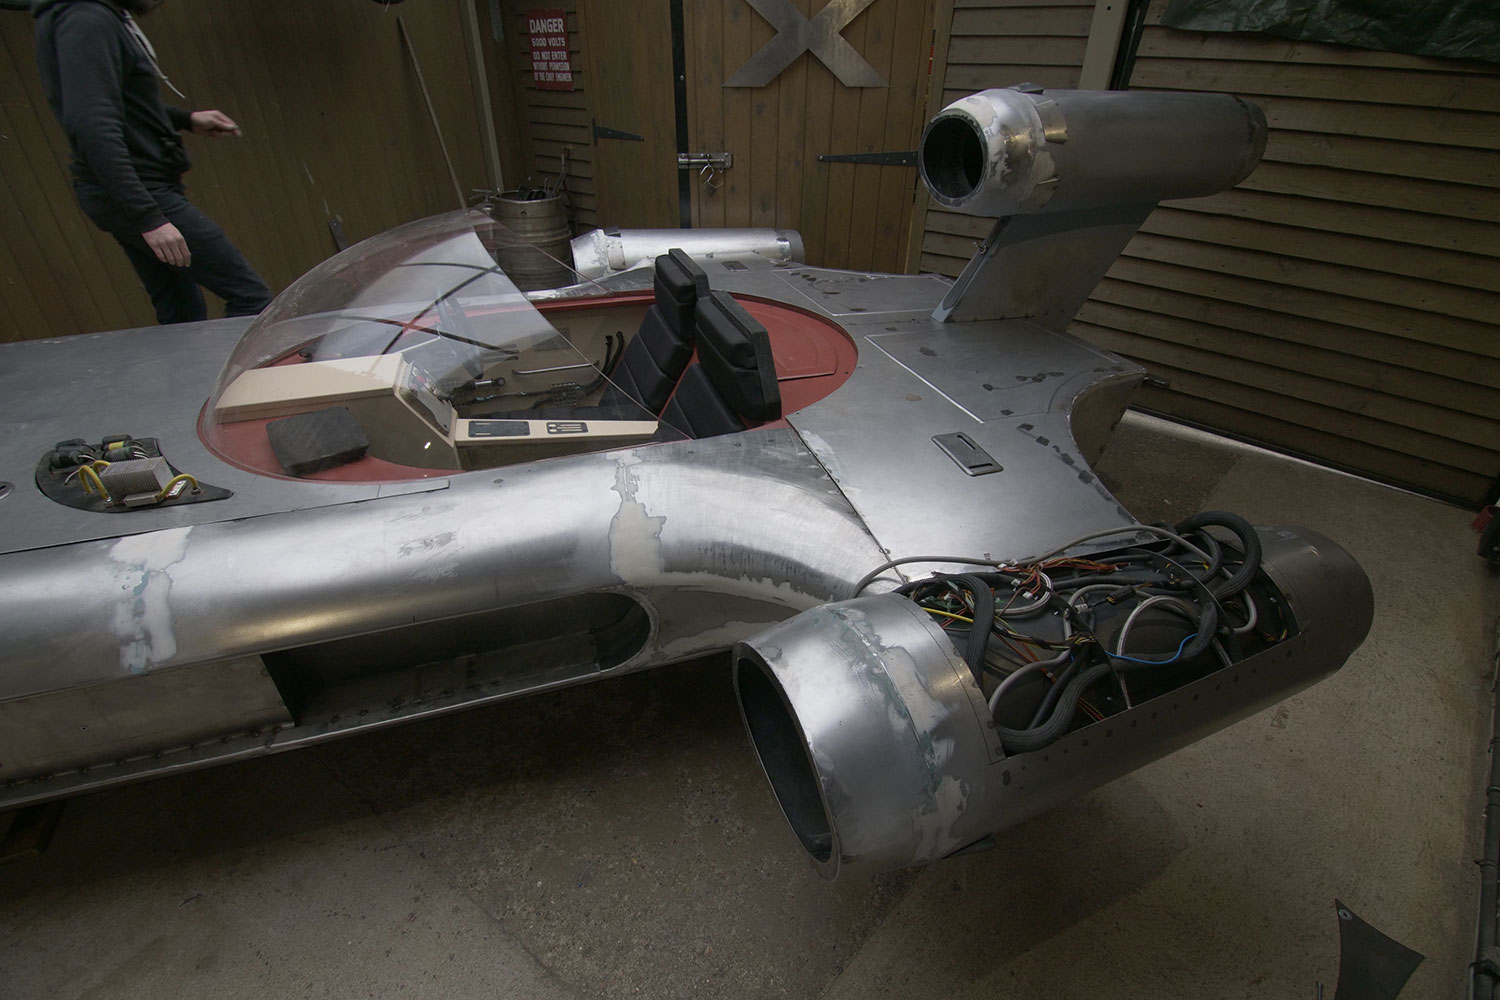 Star Wars Landspeeder To Be Auctioned On Ebay For Children In Need Uk Fundraising